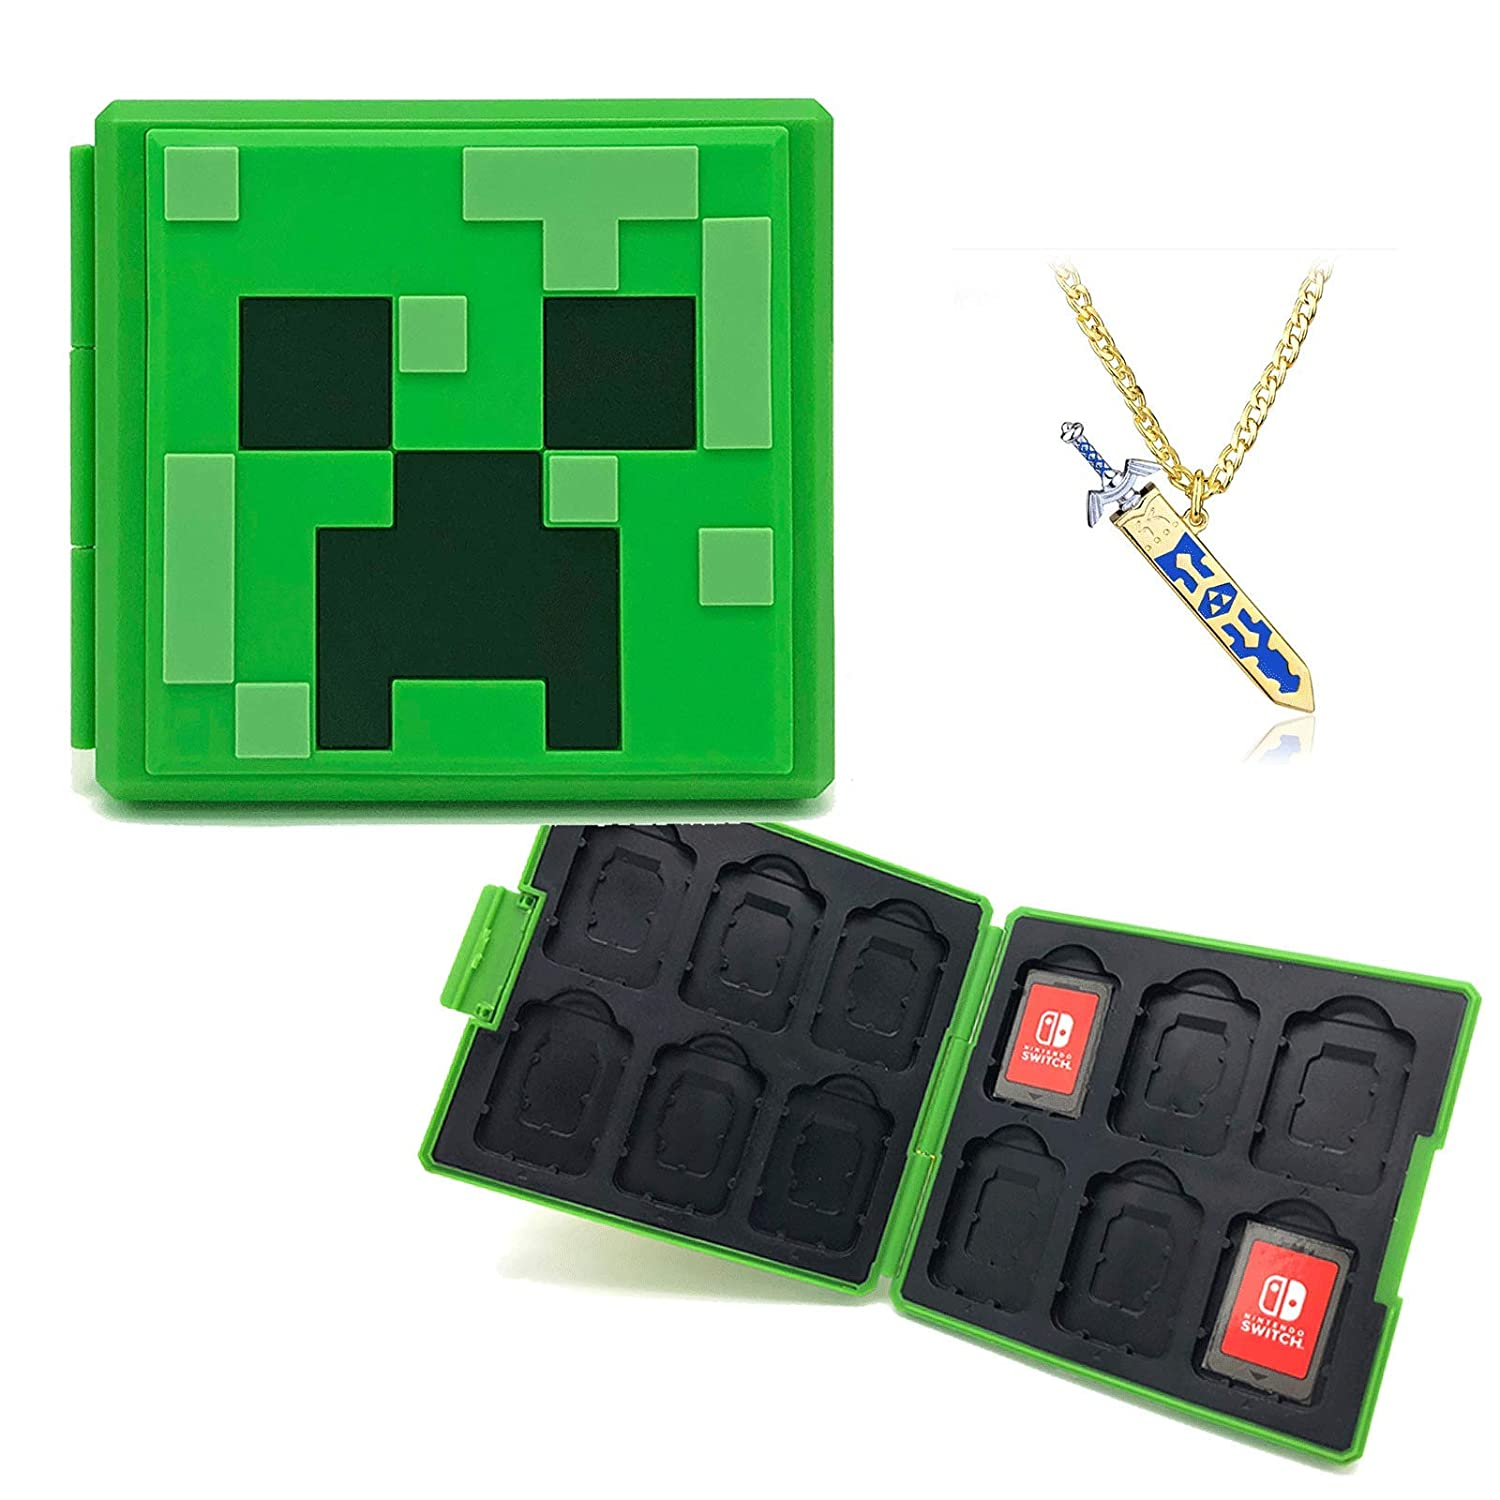 Nintendo Oakland Mall Switch Game Card Case Boxà Carrying Storage Holder Selling and selling